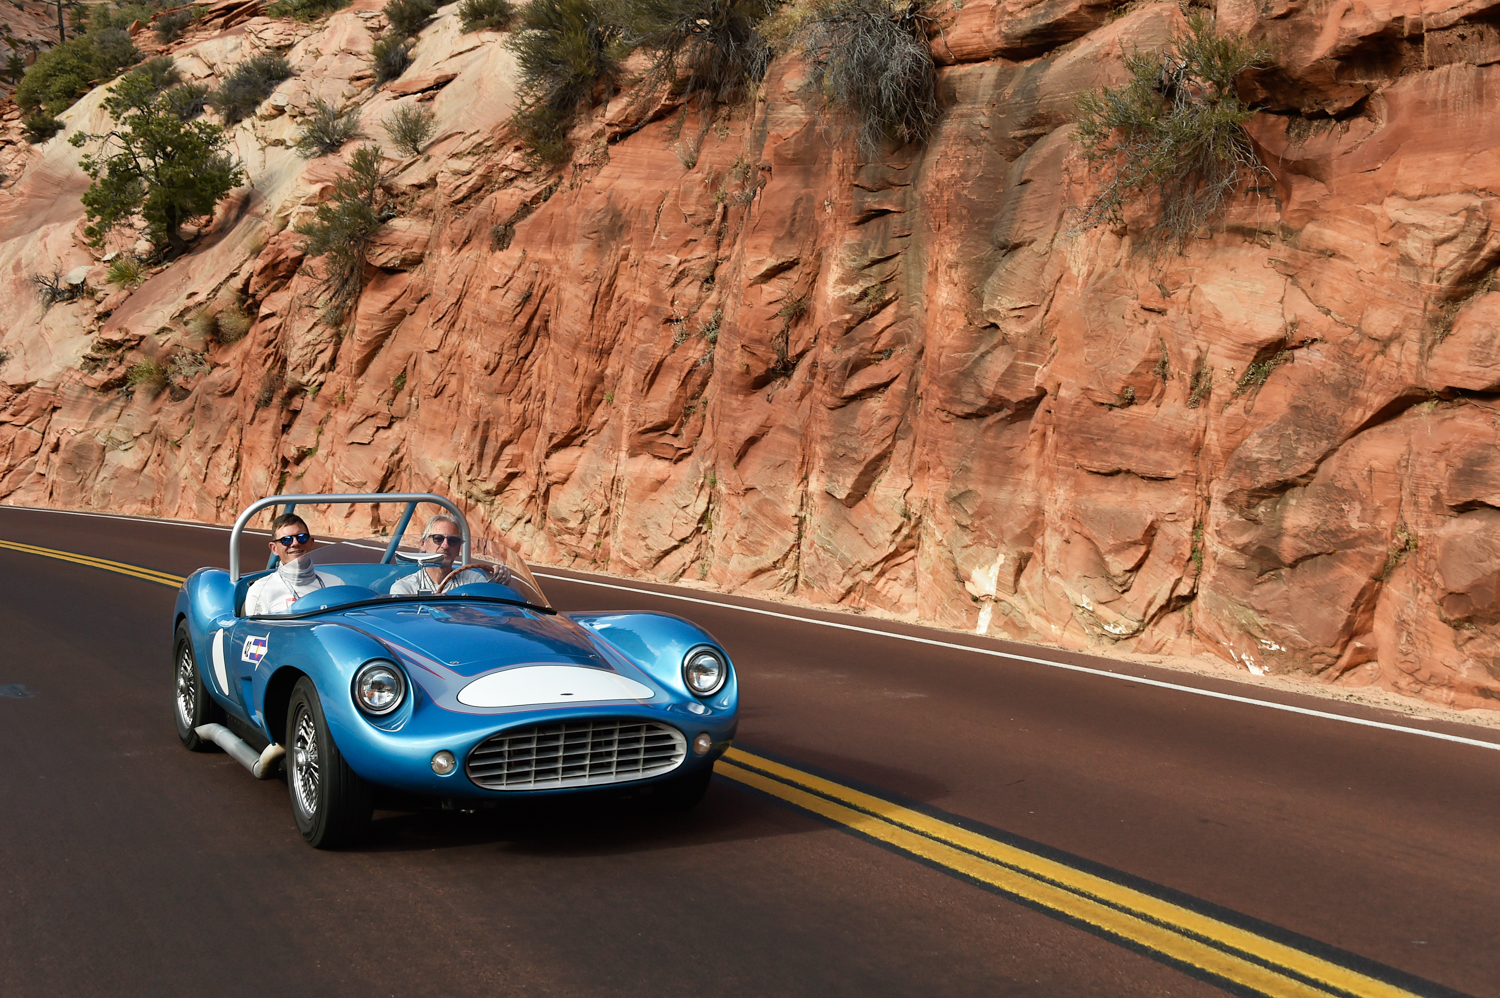 59 Devin SS-Rick & Nolan Rome-Zion National Park, Utah-Howard Koby photo-#1.jpg